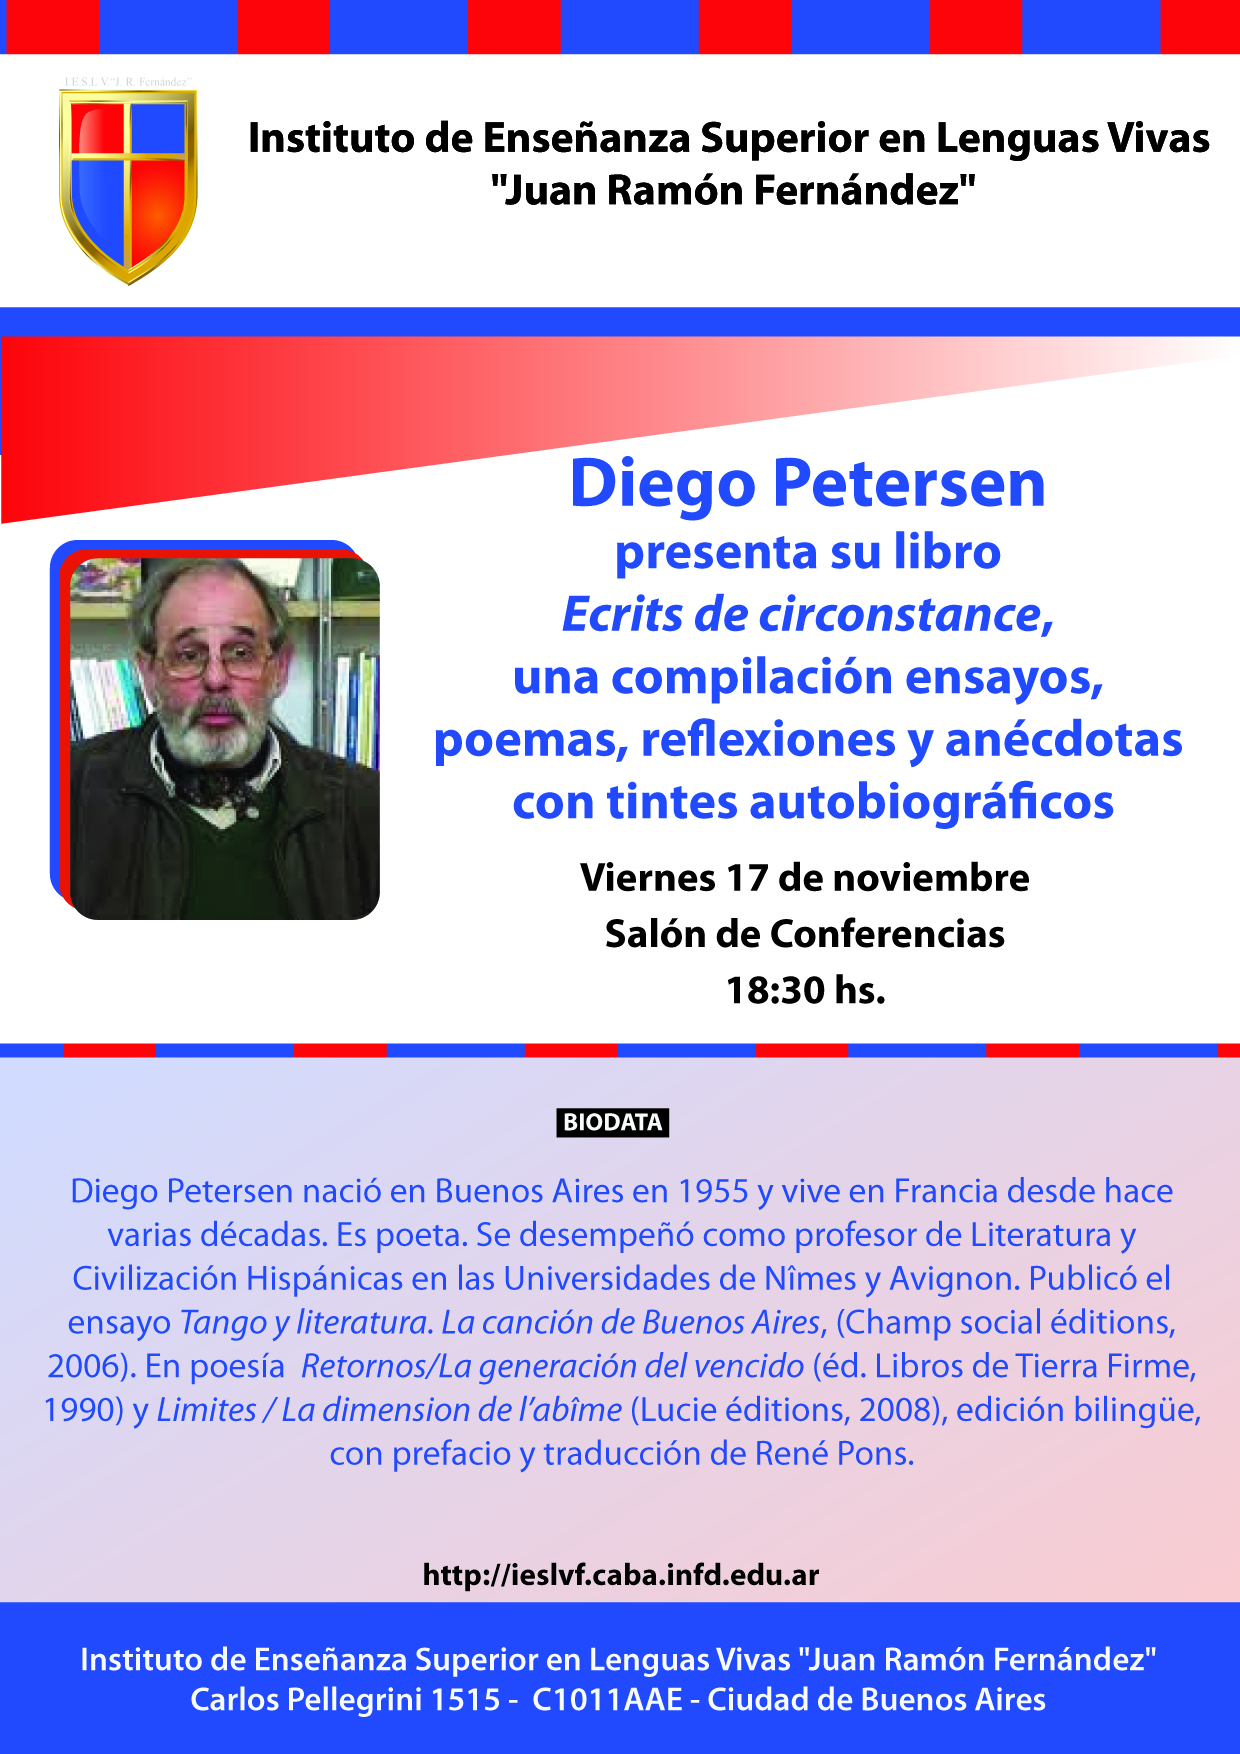 Diego Petersen